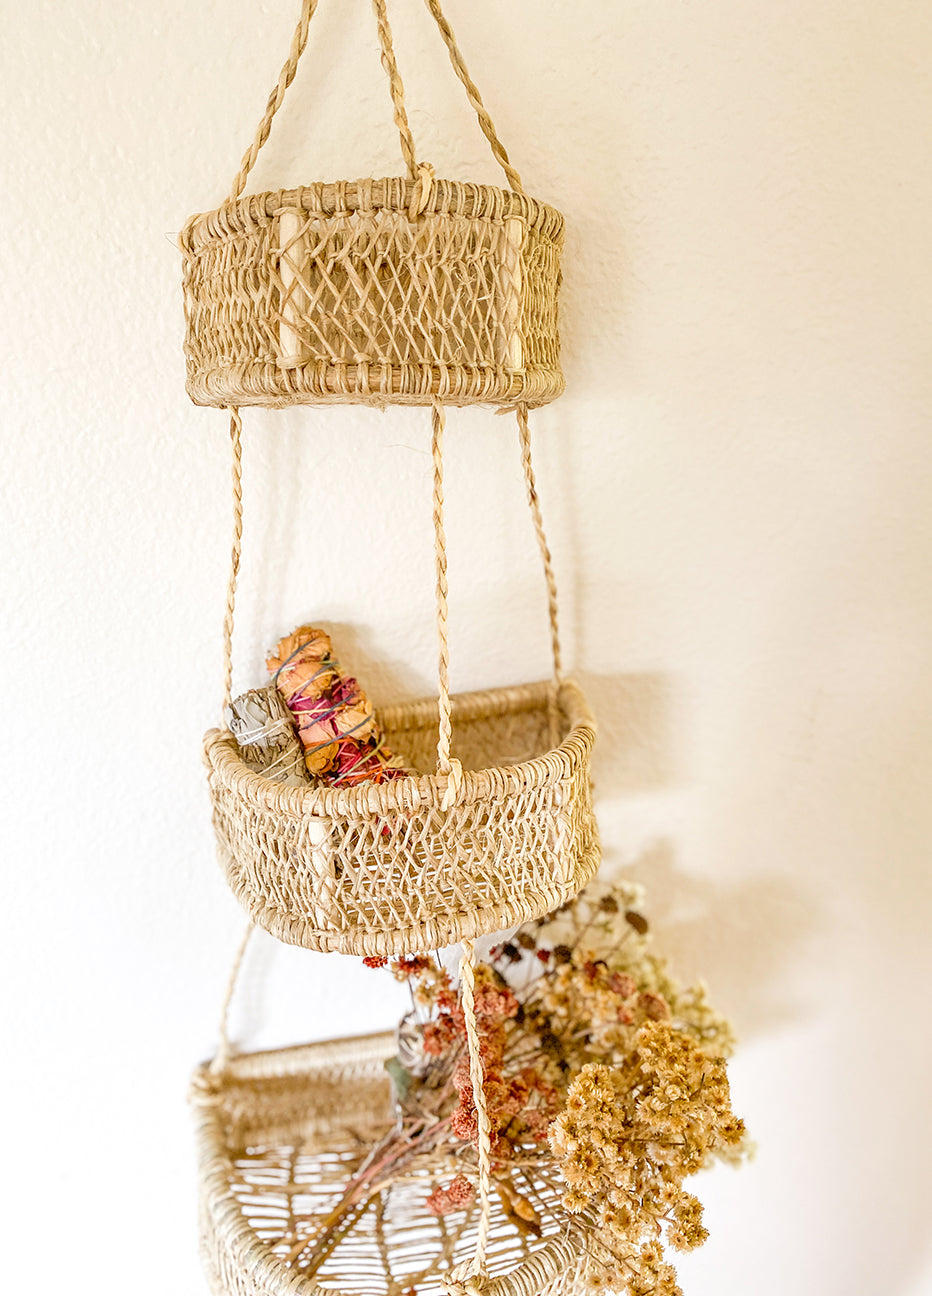 Luna Handwoven Tree Bark Hanging Basket